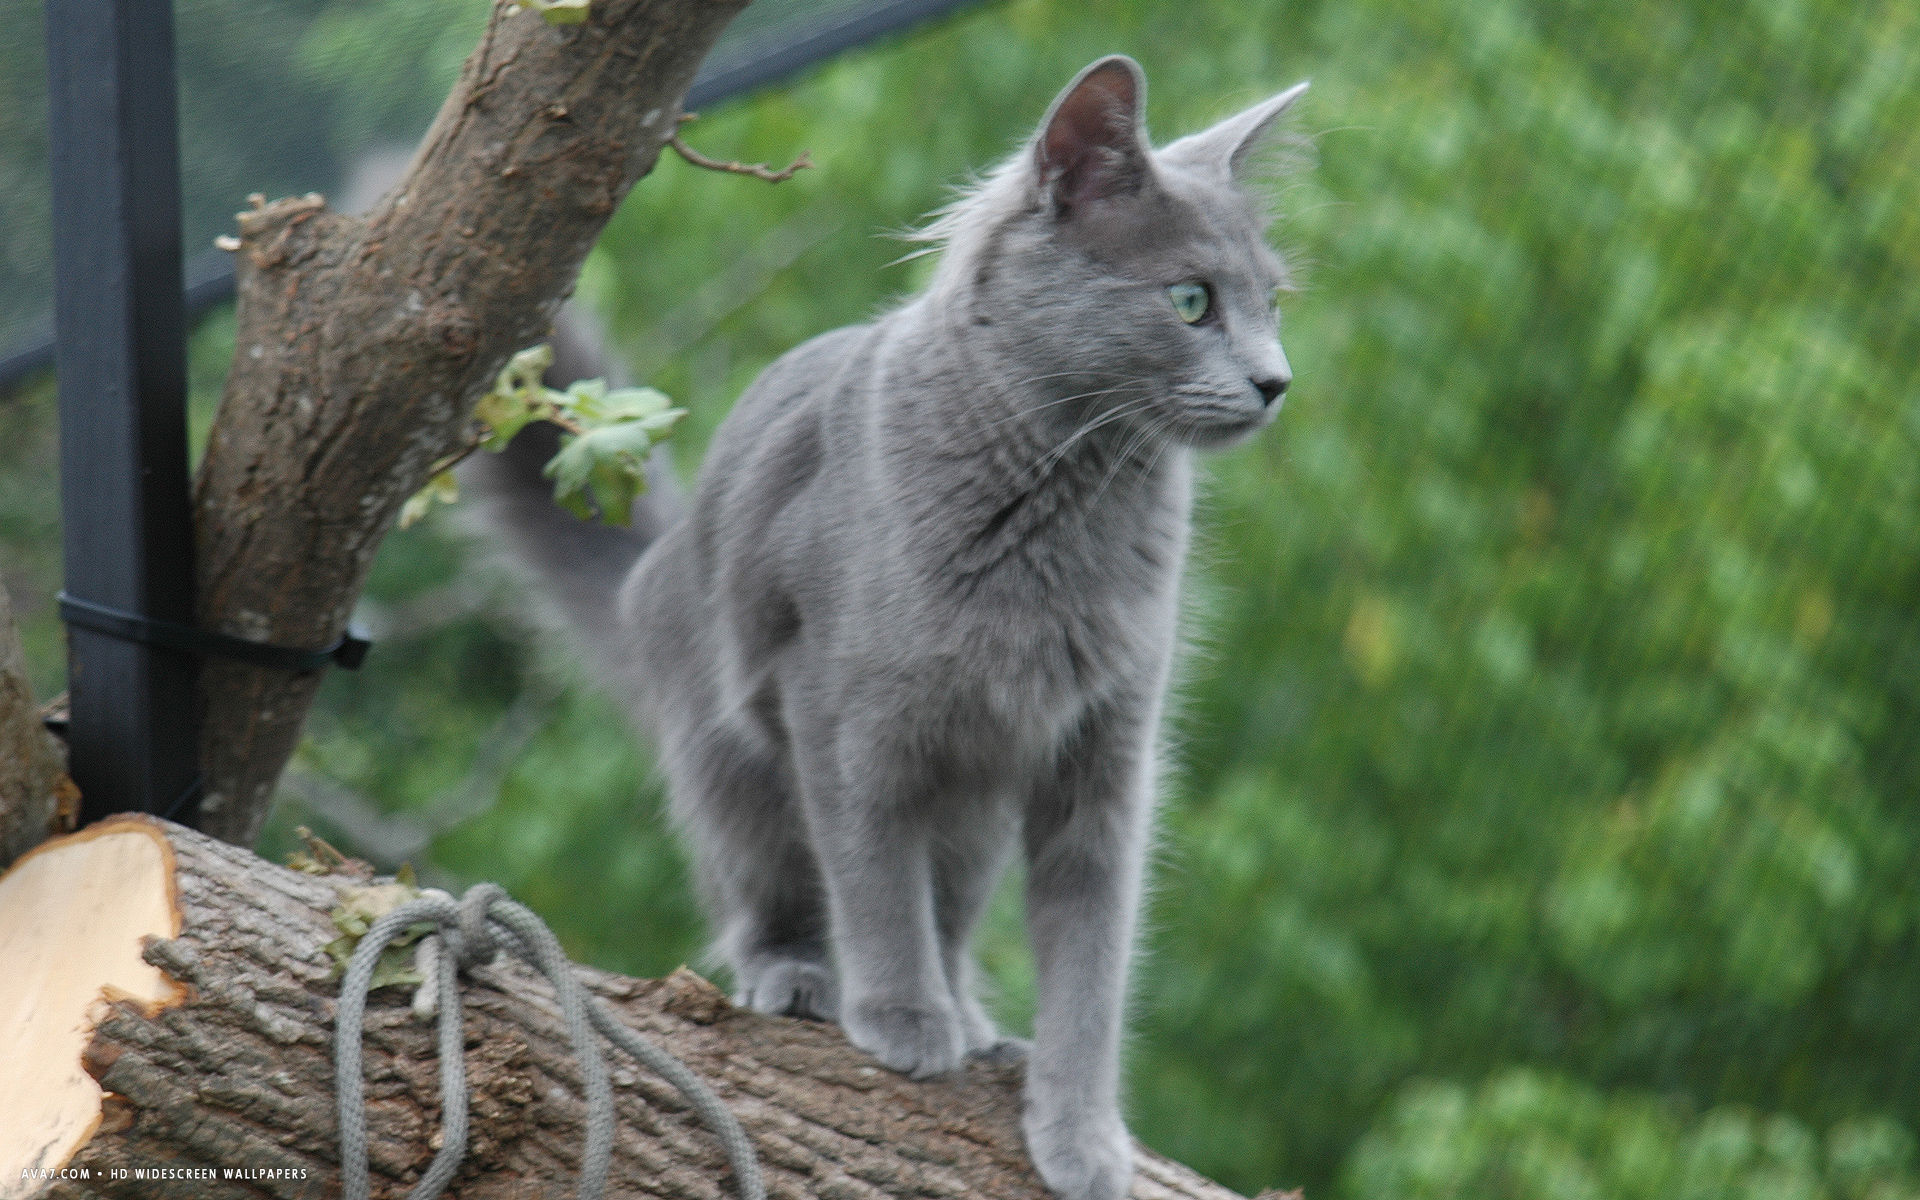 nebelung green eyes grey hair standing